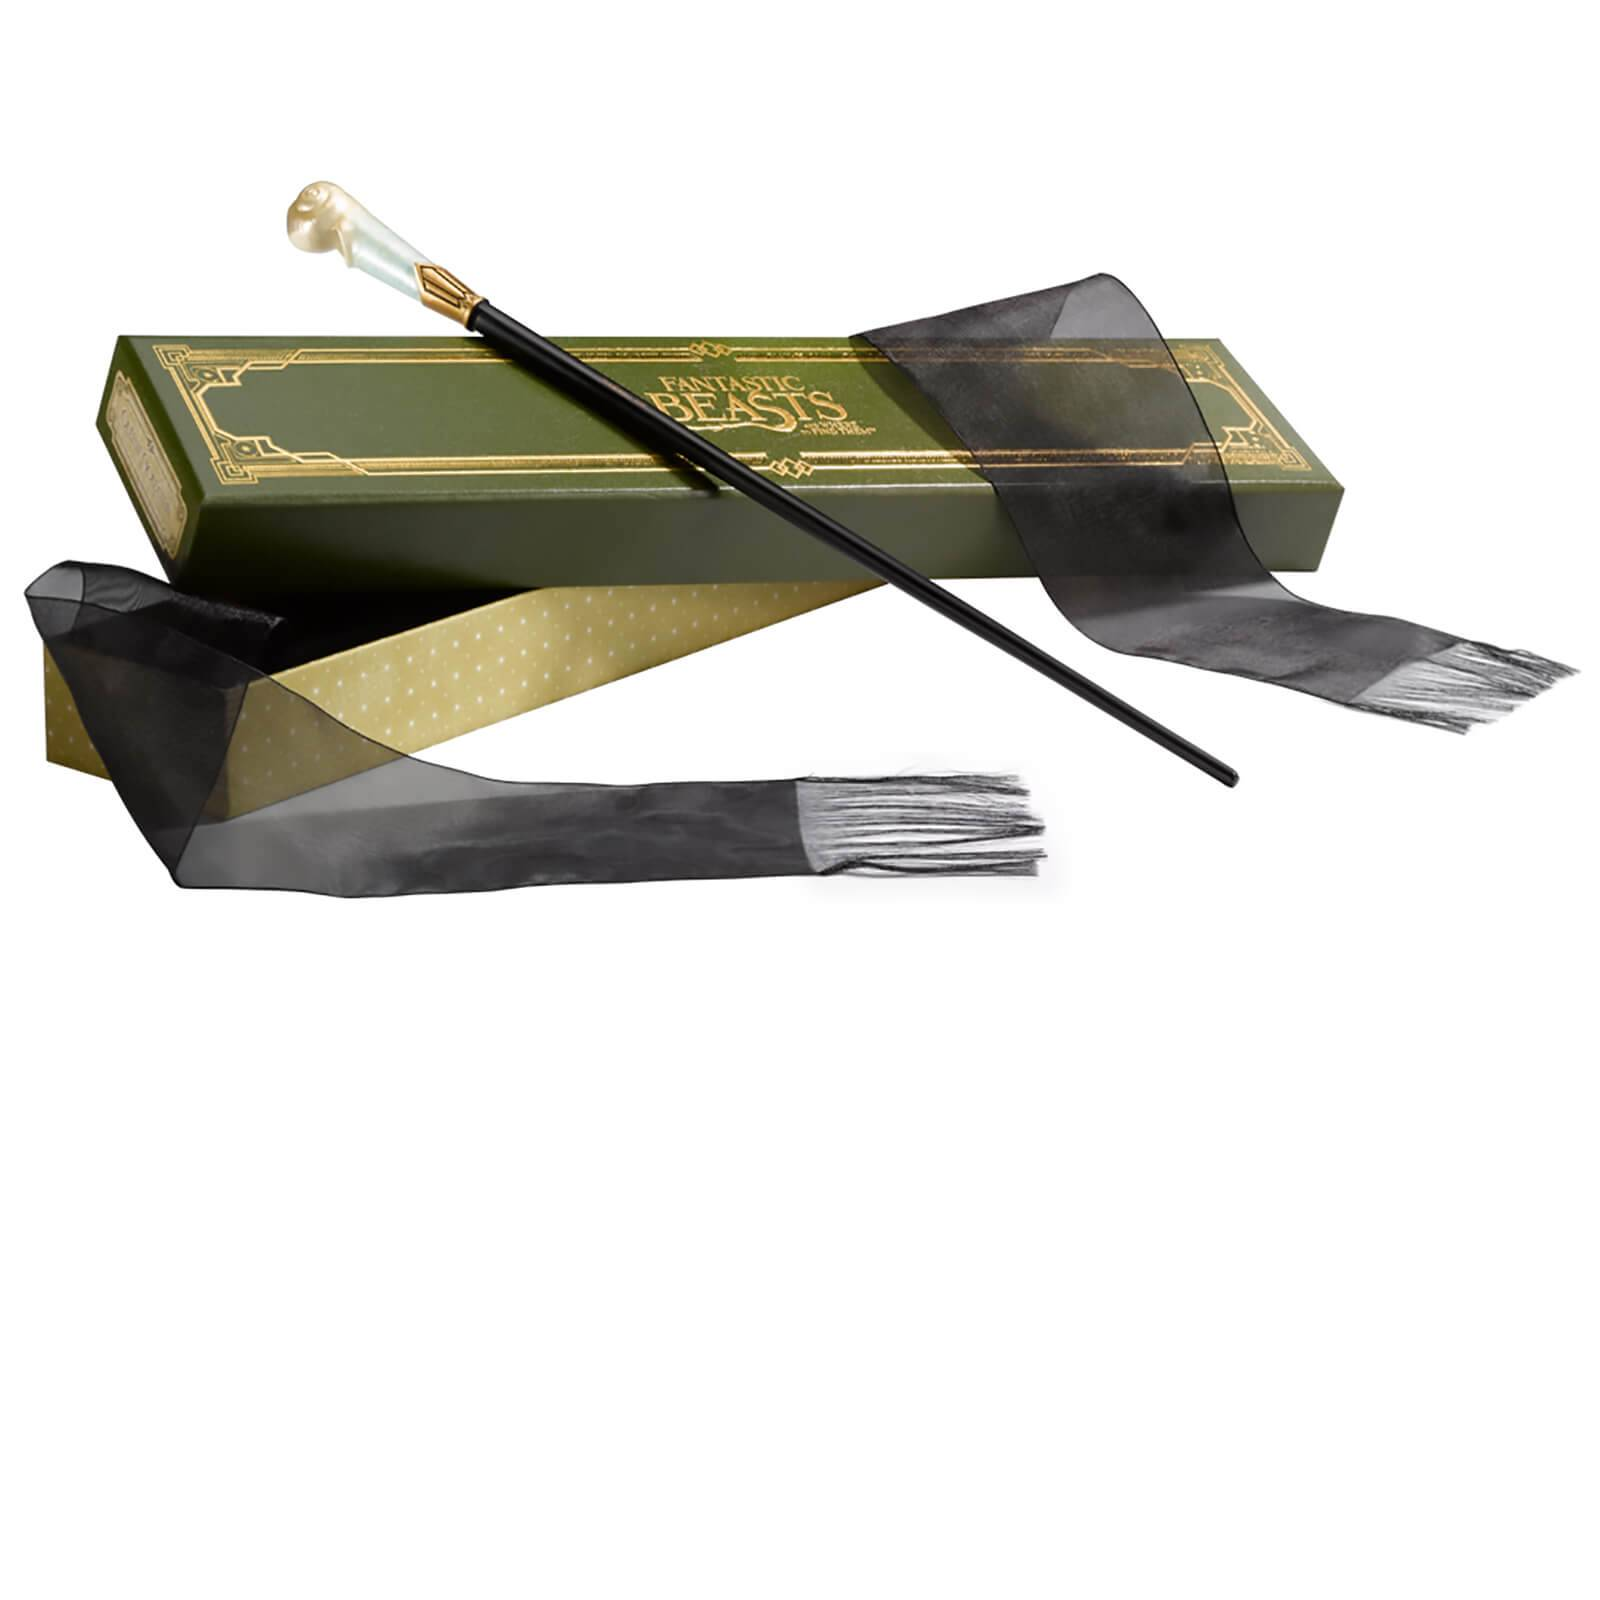 Noble Collection Fantastic Beasts and Where to Find Them Queenie Goldstein's Wand in Ollivander's Collector's Box